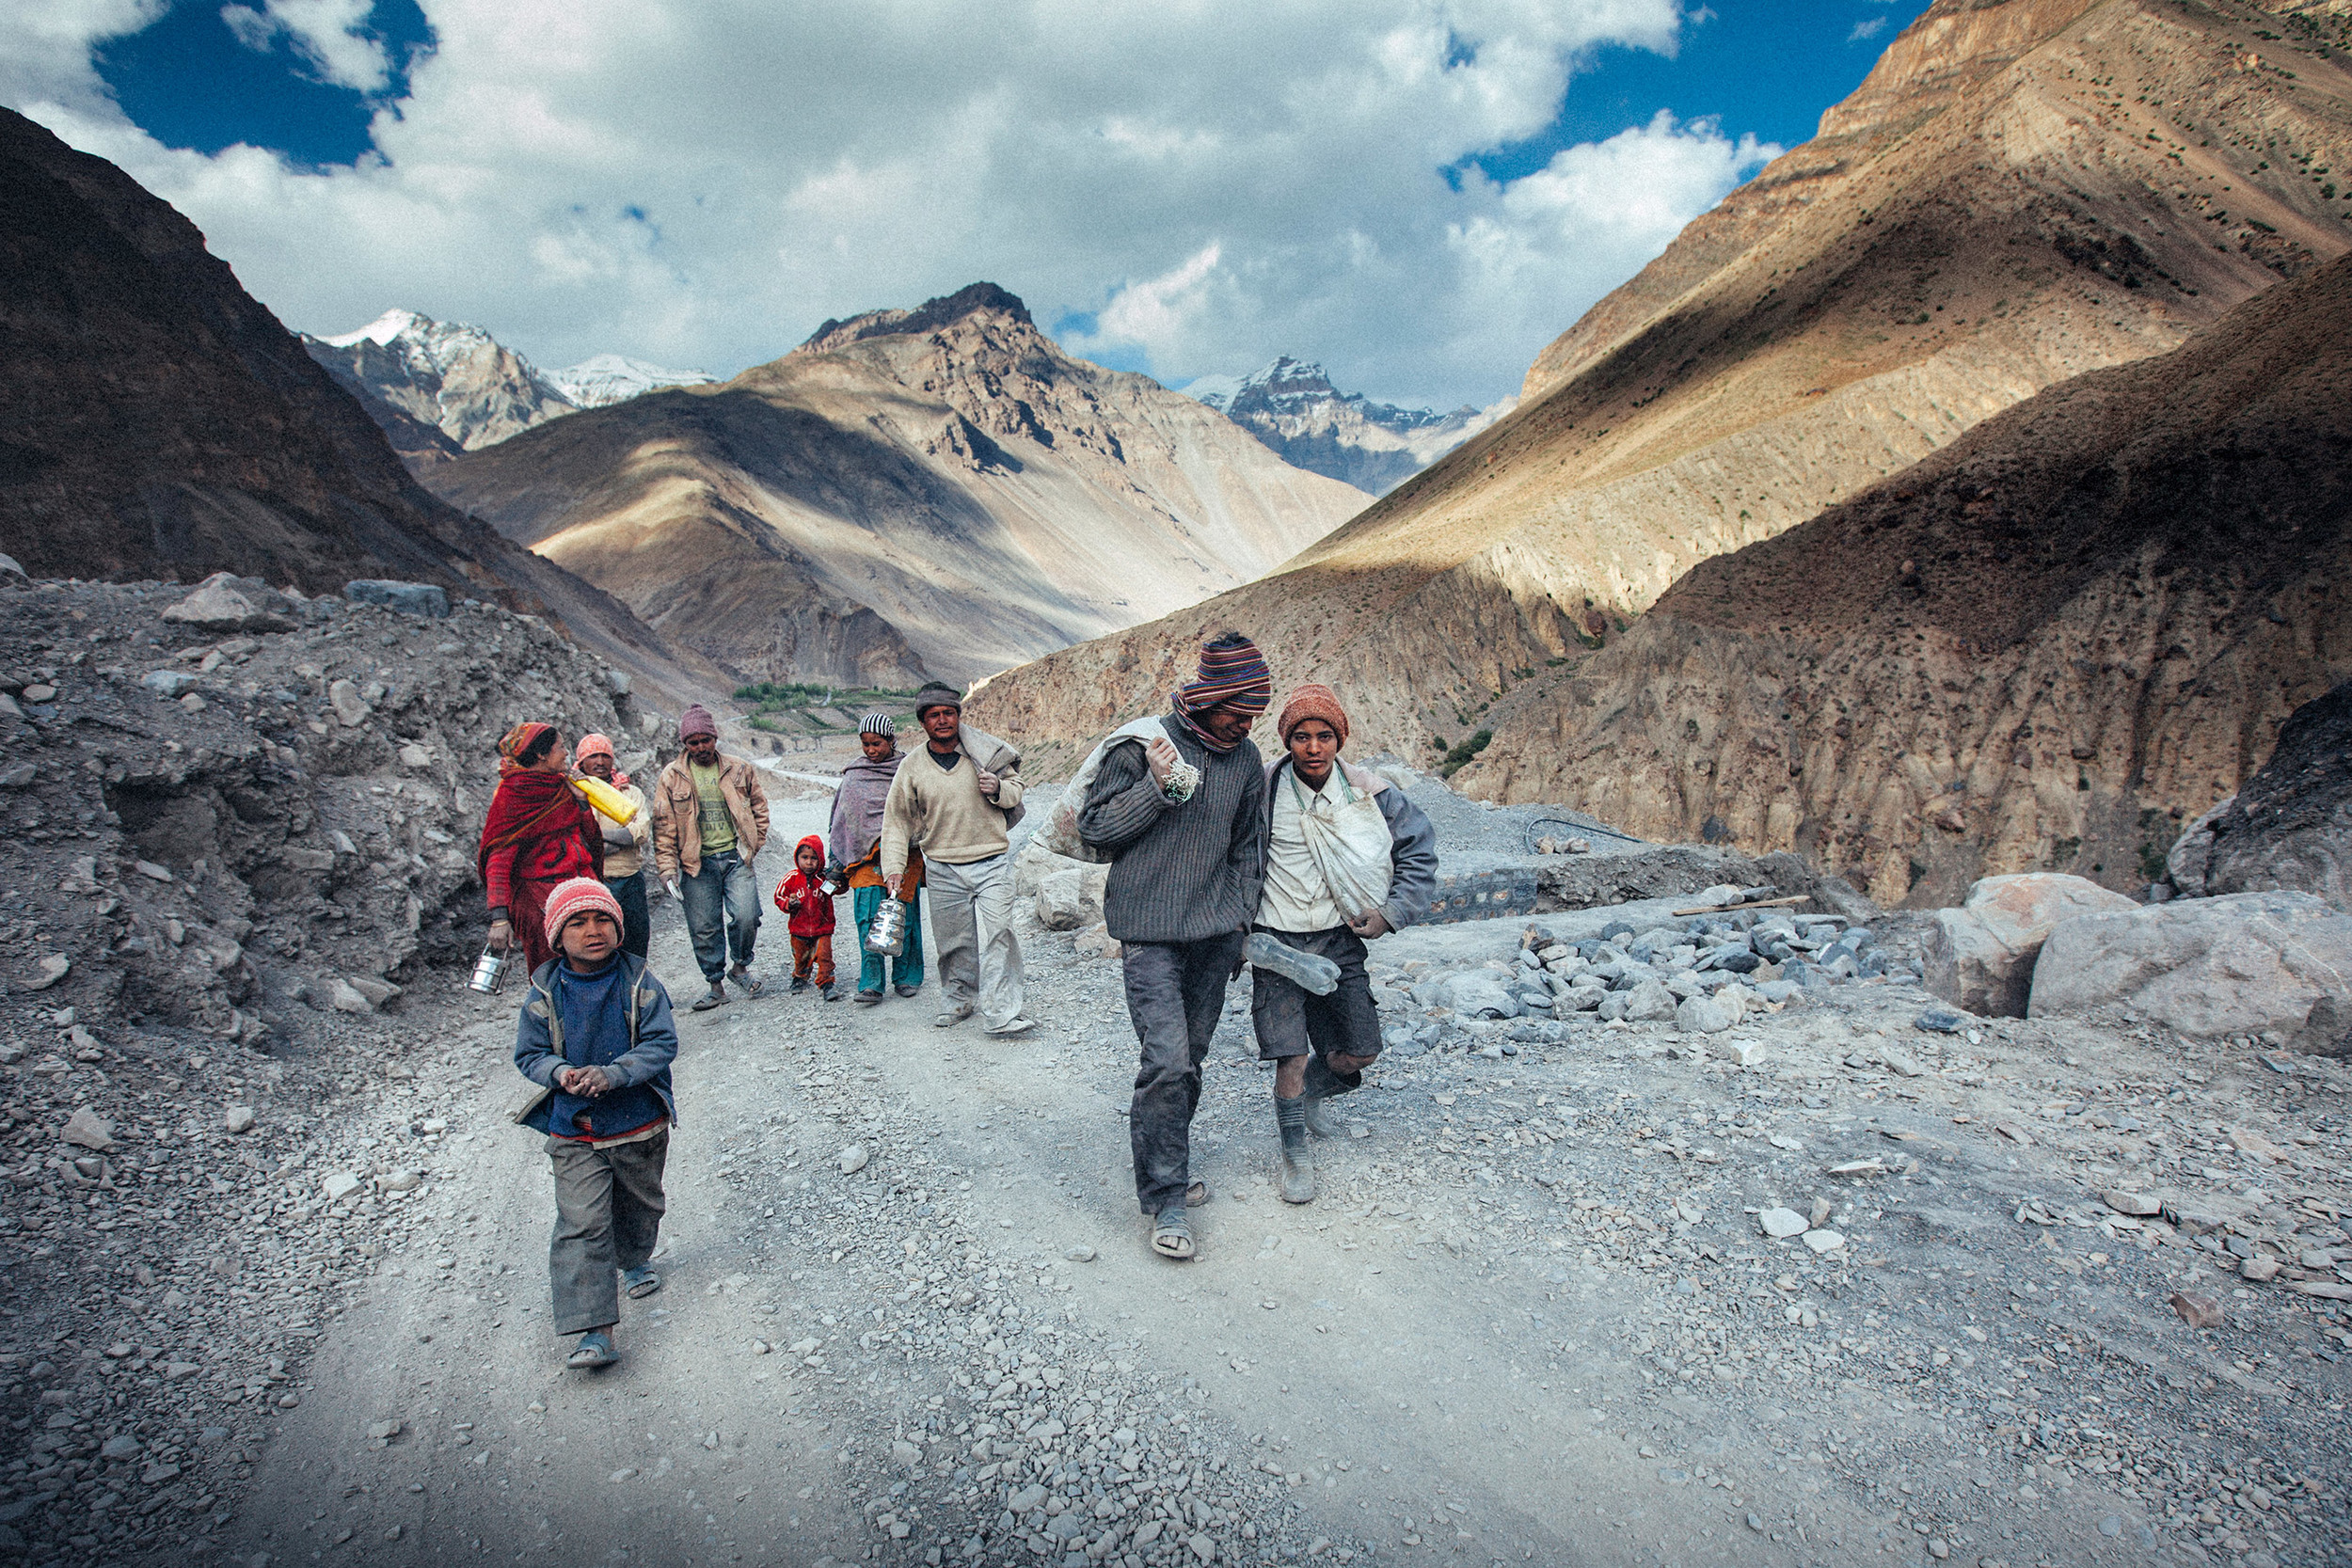 Road workers going home for the night, Indian Himalayas